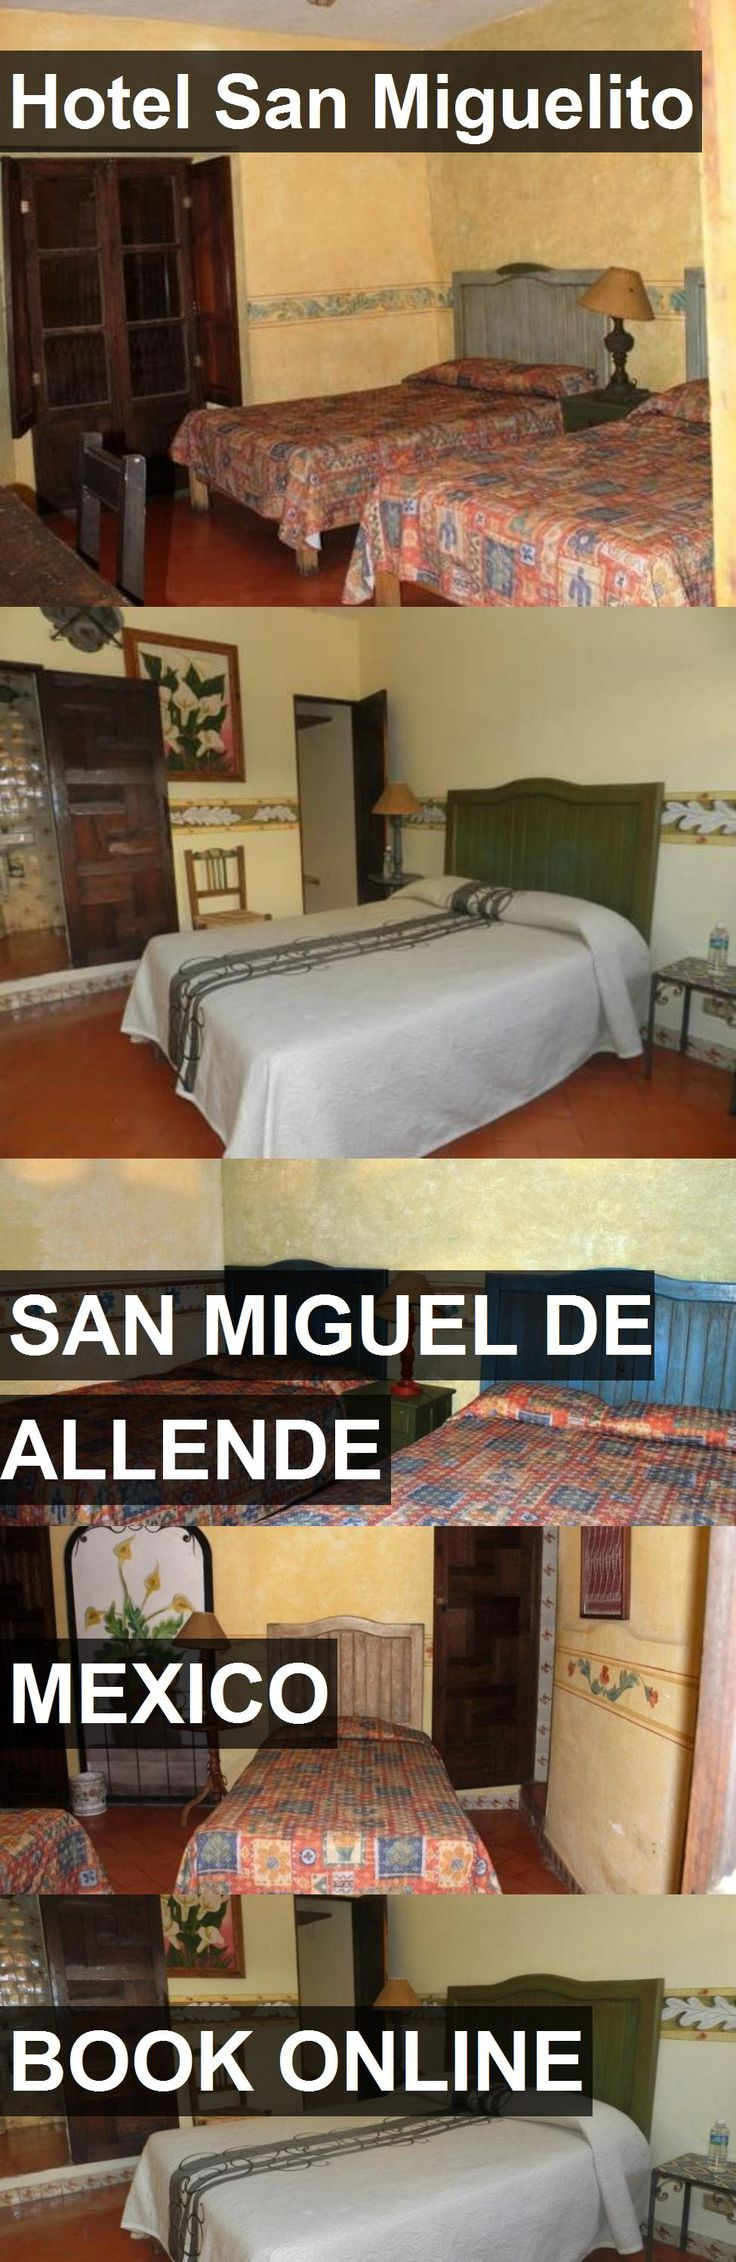 Hotel Hotel San Miguelito in San Miguel De Allende, Mexico. For more information, photos, reviews and best prices please follow the link. #Mexico #SanMiguelDeAllende #HotelSanMiguelito #hotel #travel #vacation